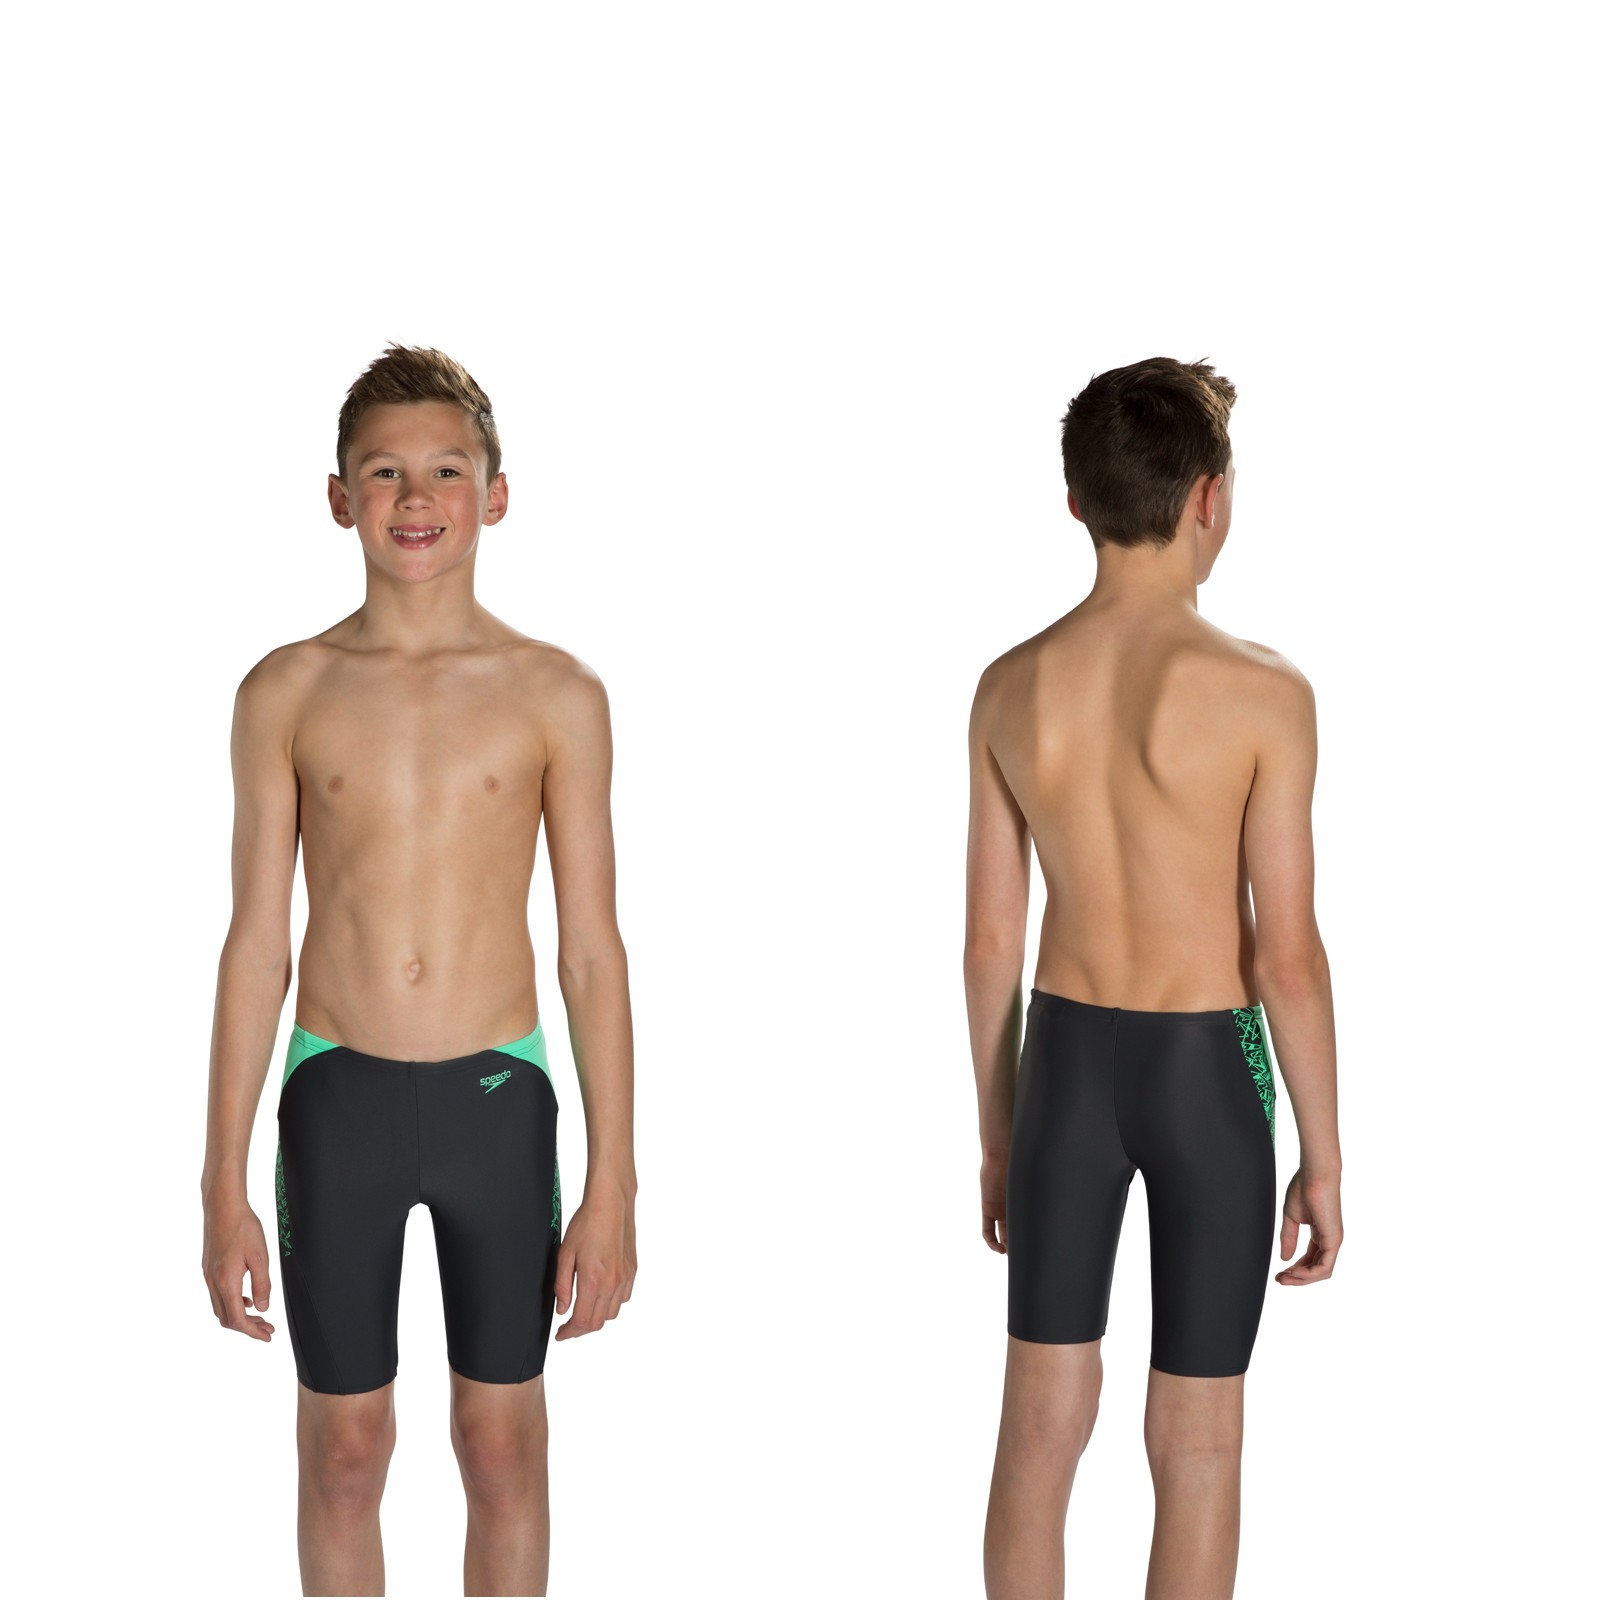 badehose von speedo jammer jungen kinder. Black Bedroom Furniture Sets. Home Design Ideas